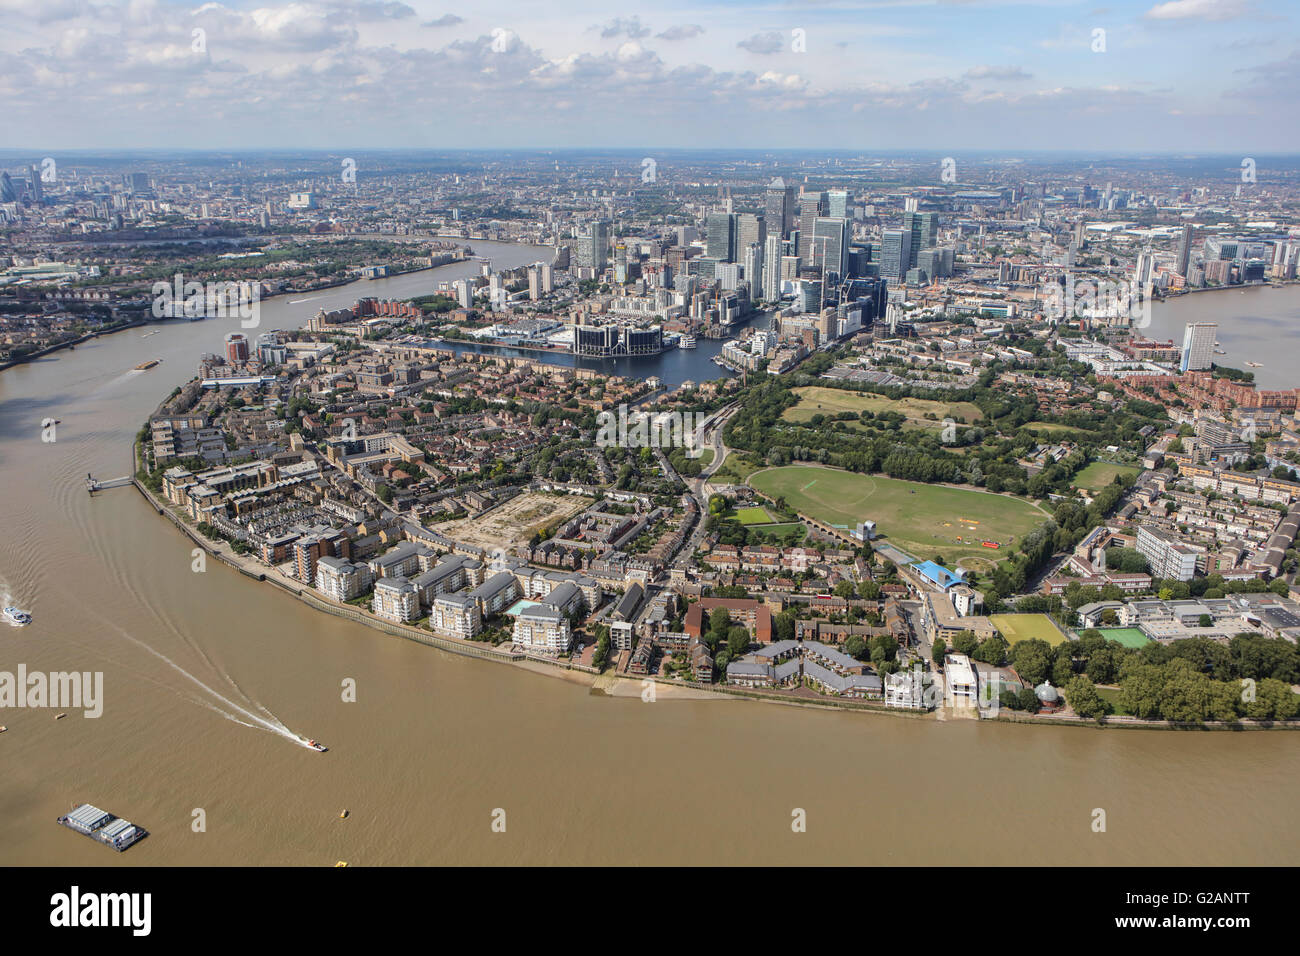 An aerial view of the Isle of Dogs from the South - Stock Image